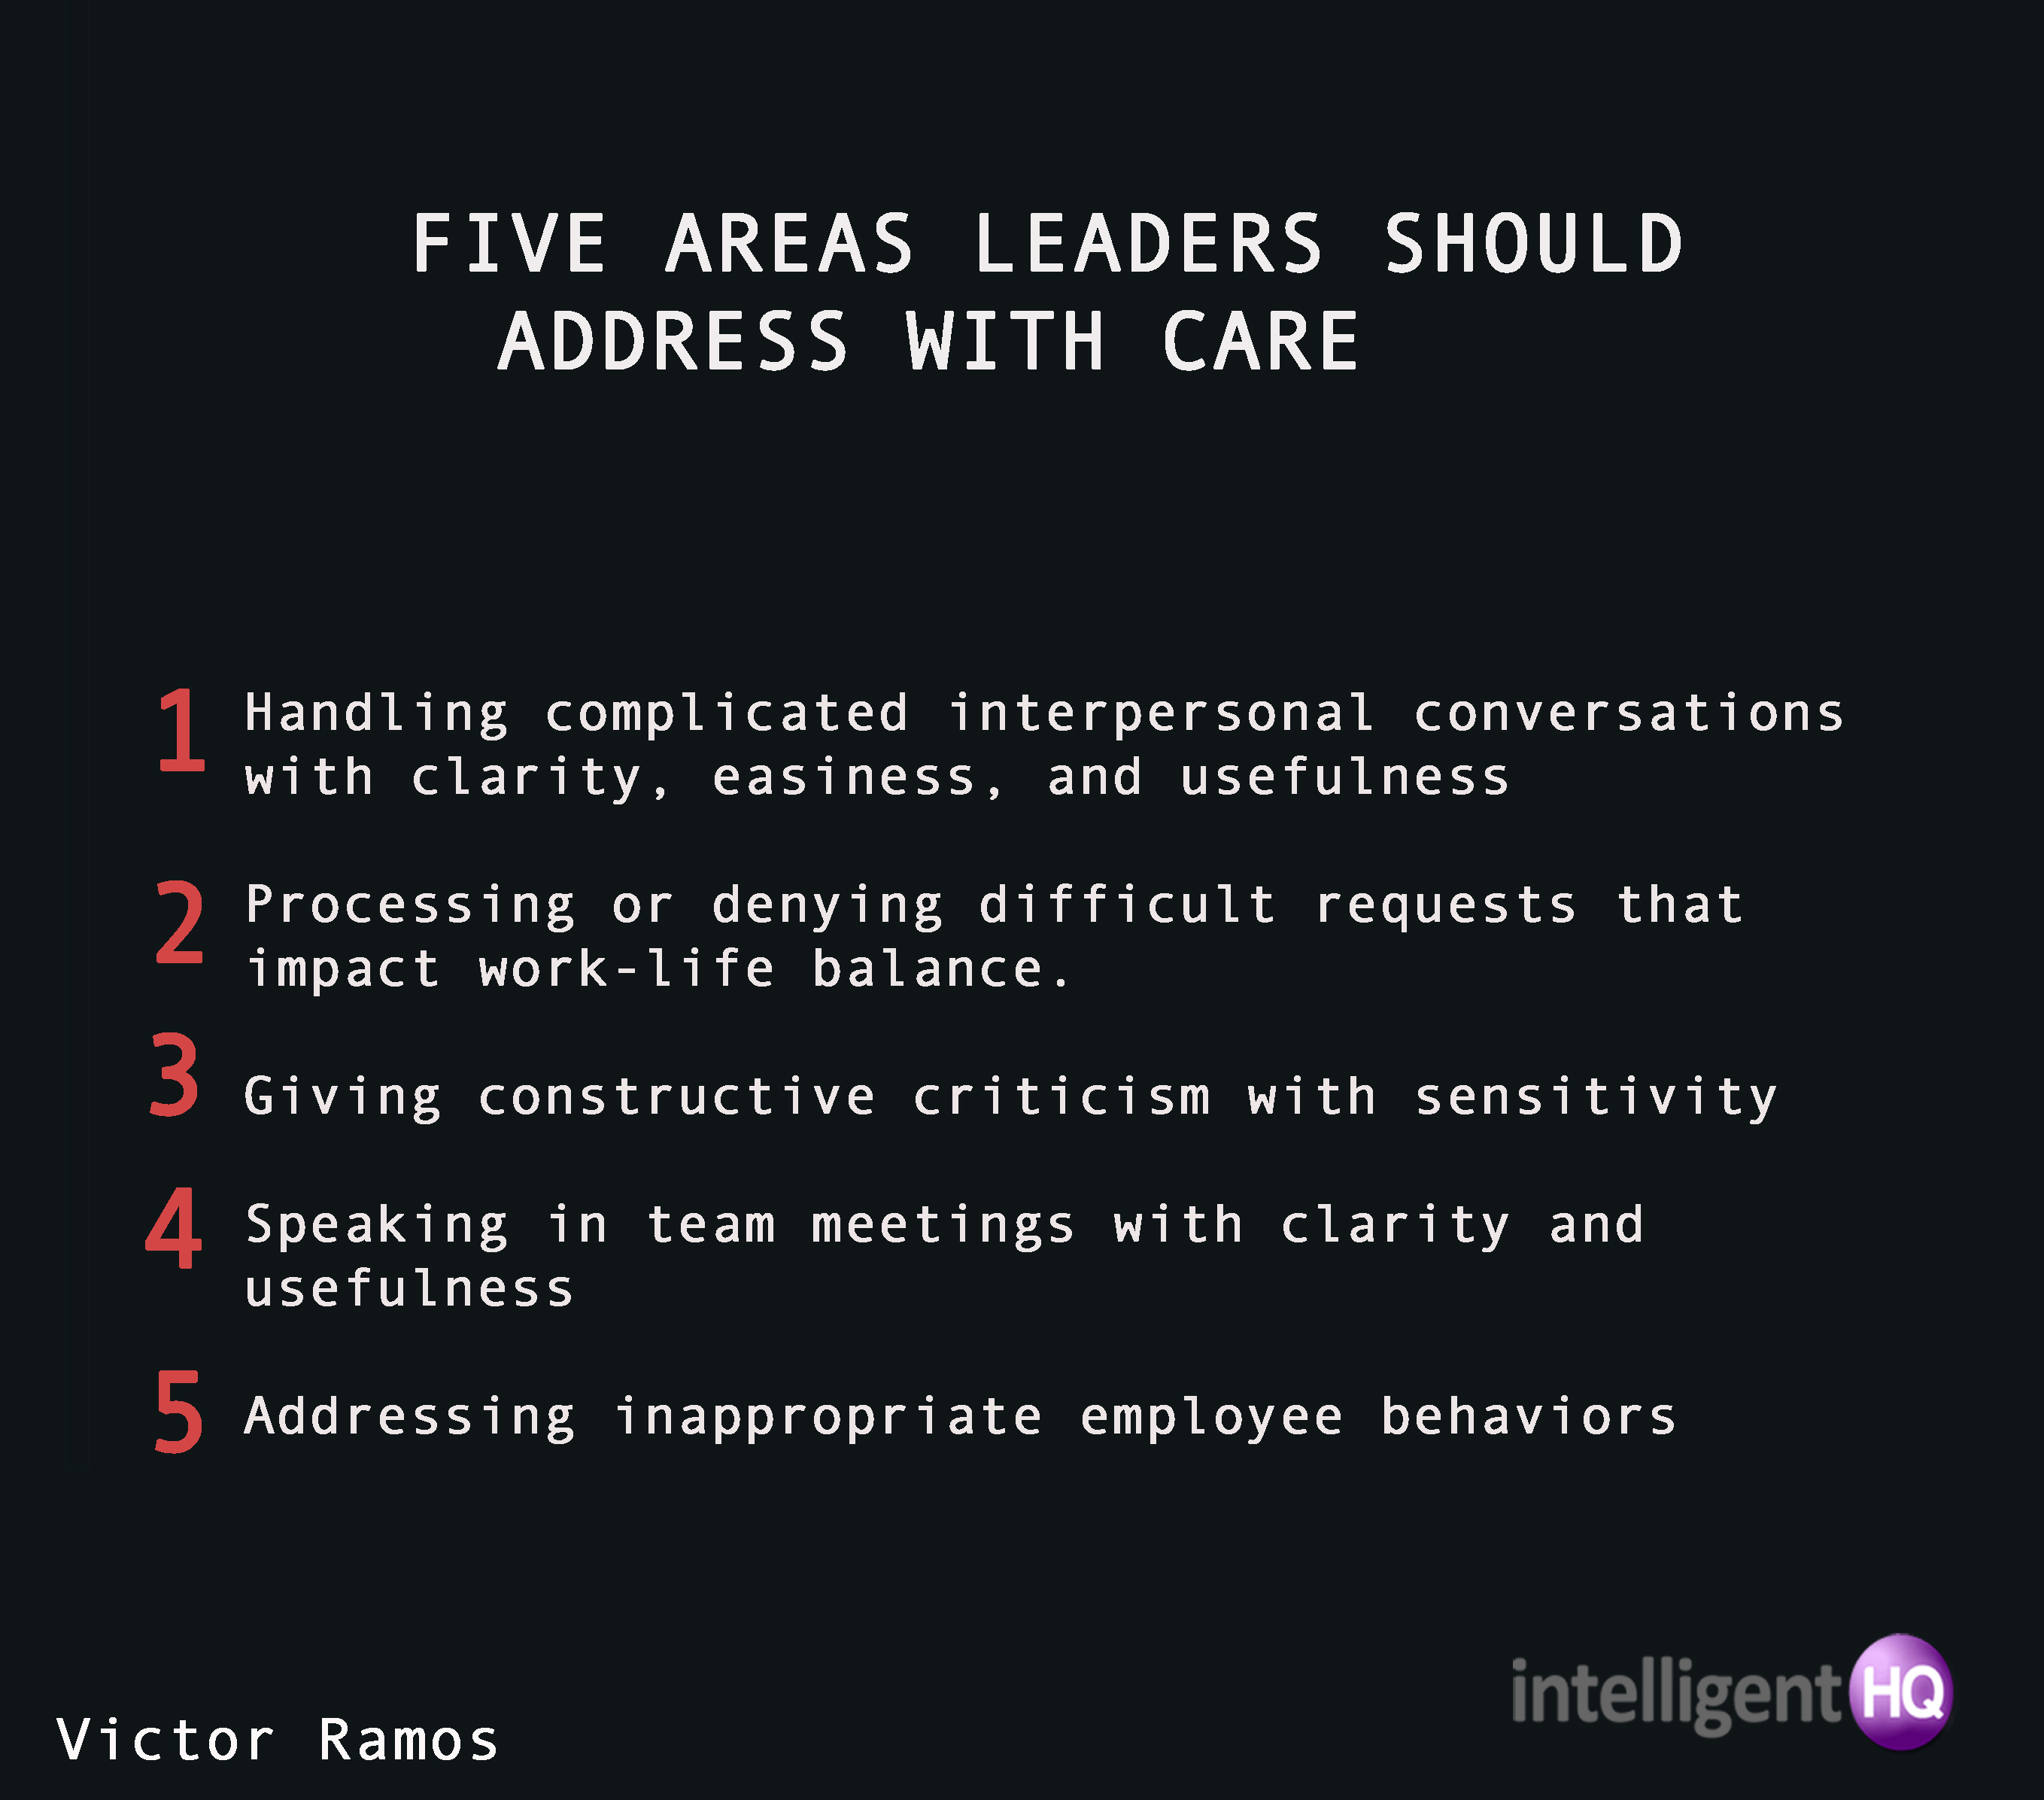 Five areas leaders should address with care